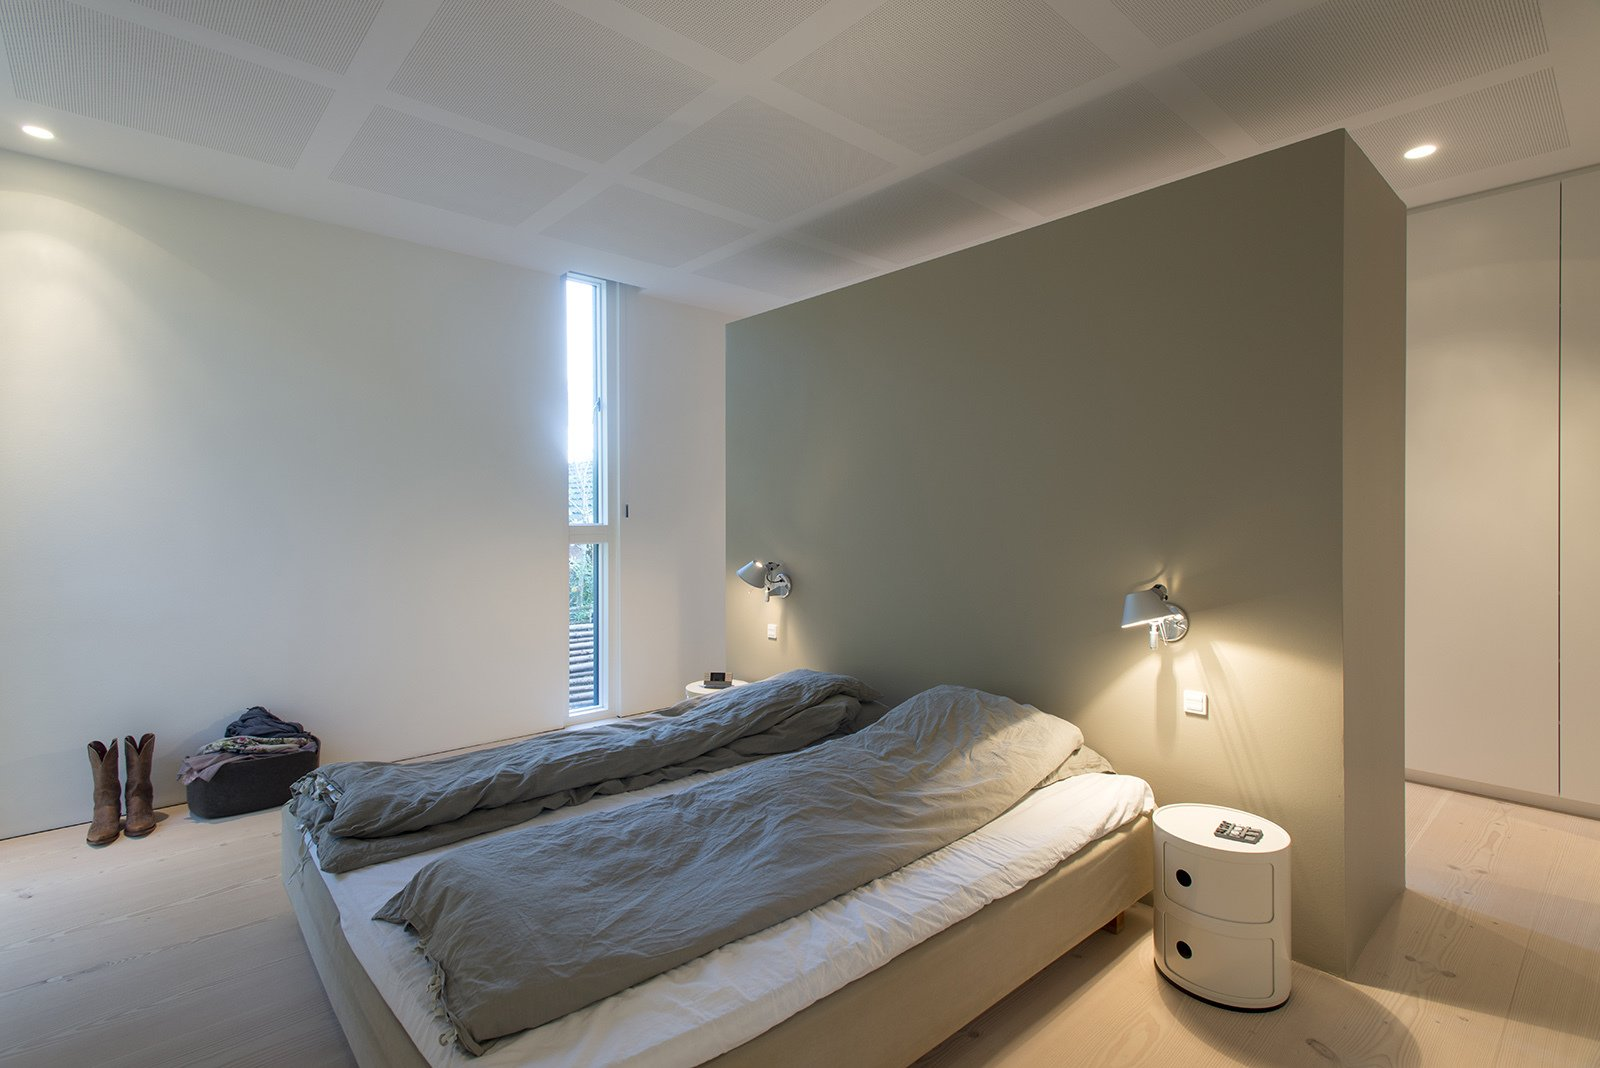 Design classics like the Tolomeo wall sconce and Componibili table round out the bedroom. Villa R by Diana Budds